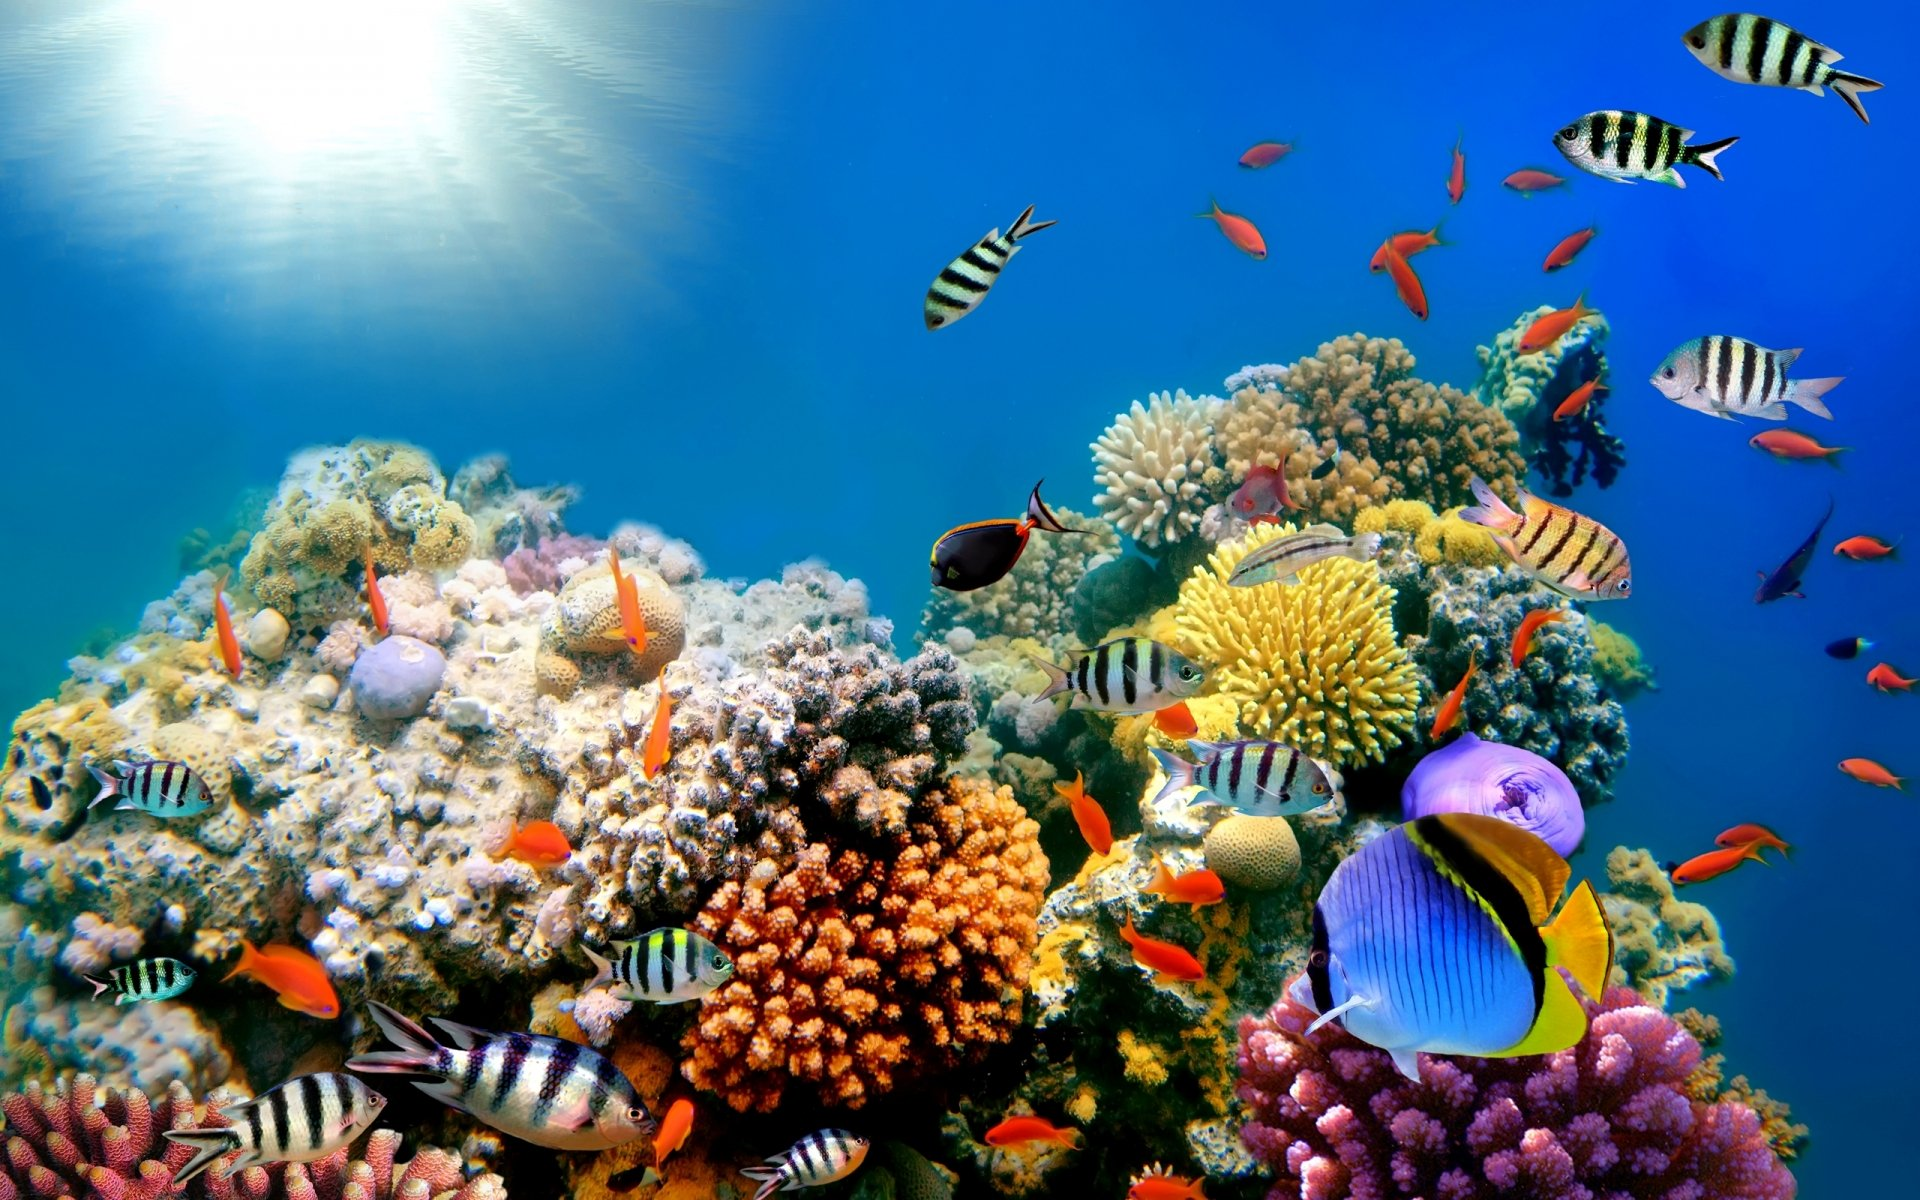 Ocean Coral Desktop Backgrounds chillcovercom Underwater Ocean 1920x1200